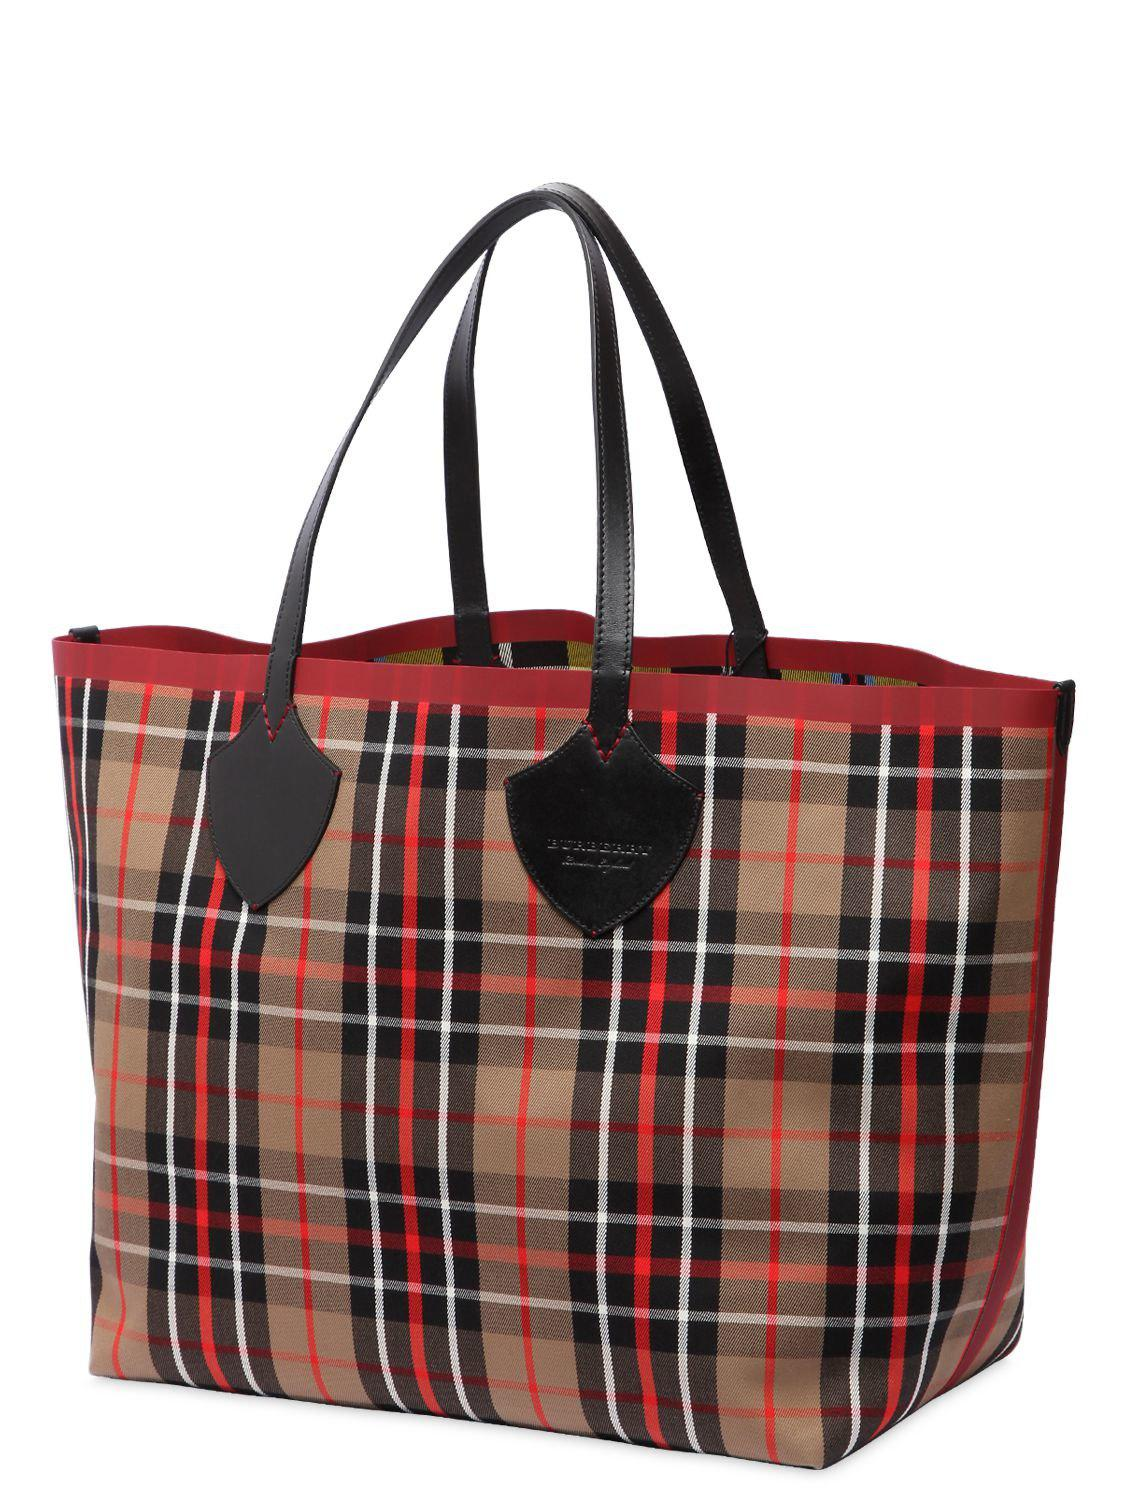 0b9920441801 Lyst - Burberry Runway Ss18 Reversible Check Tote Bag